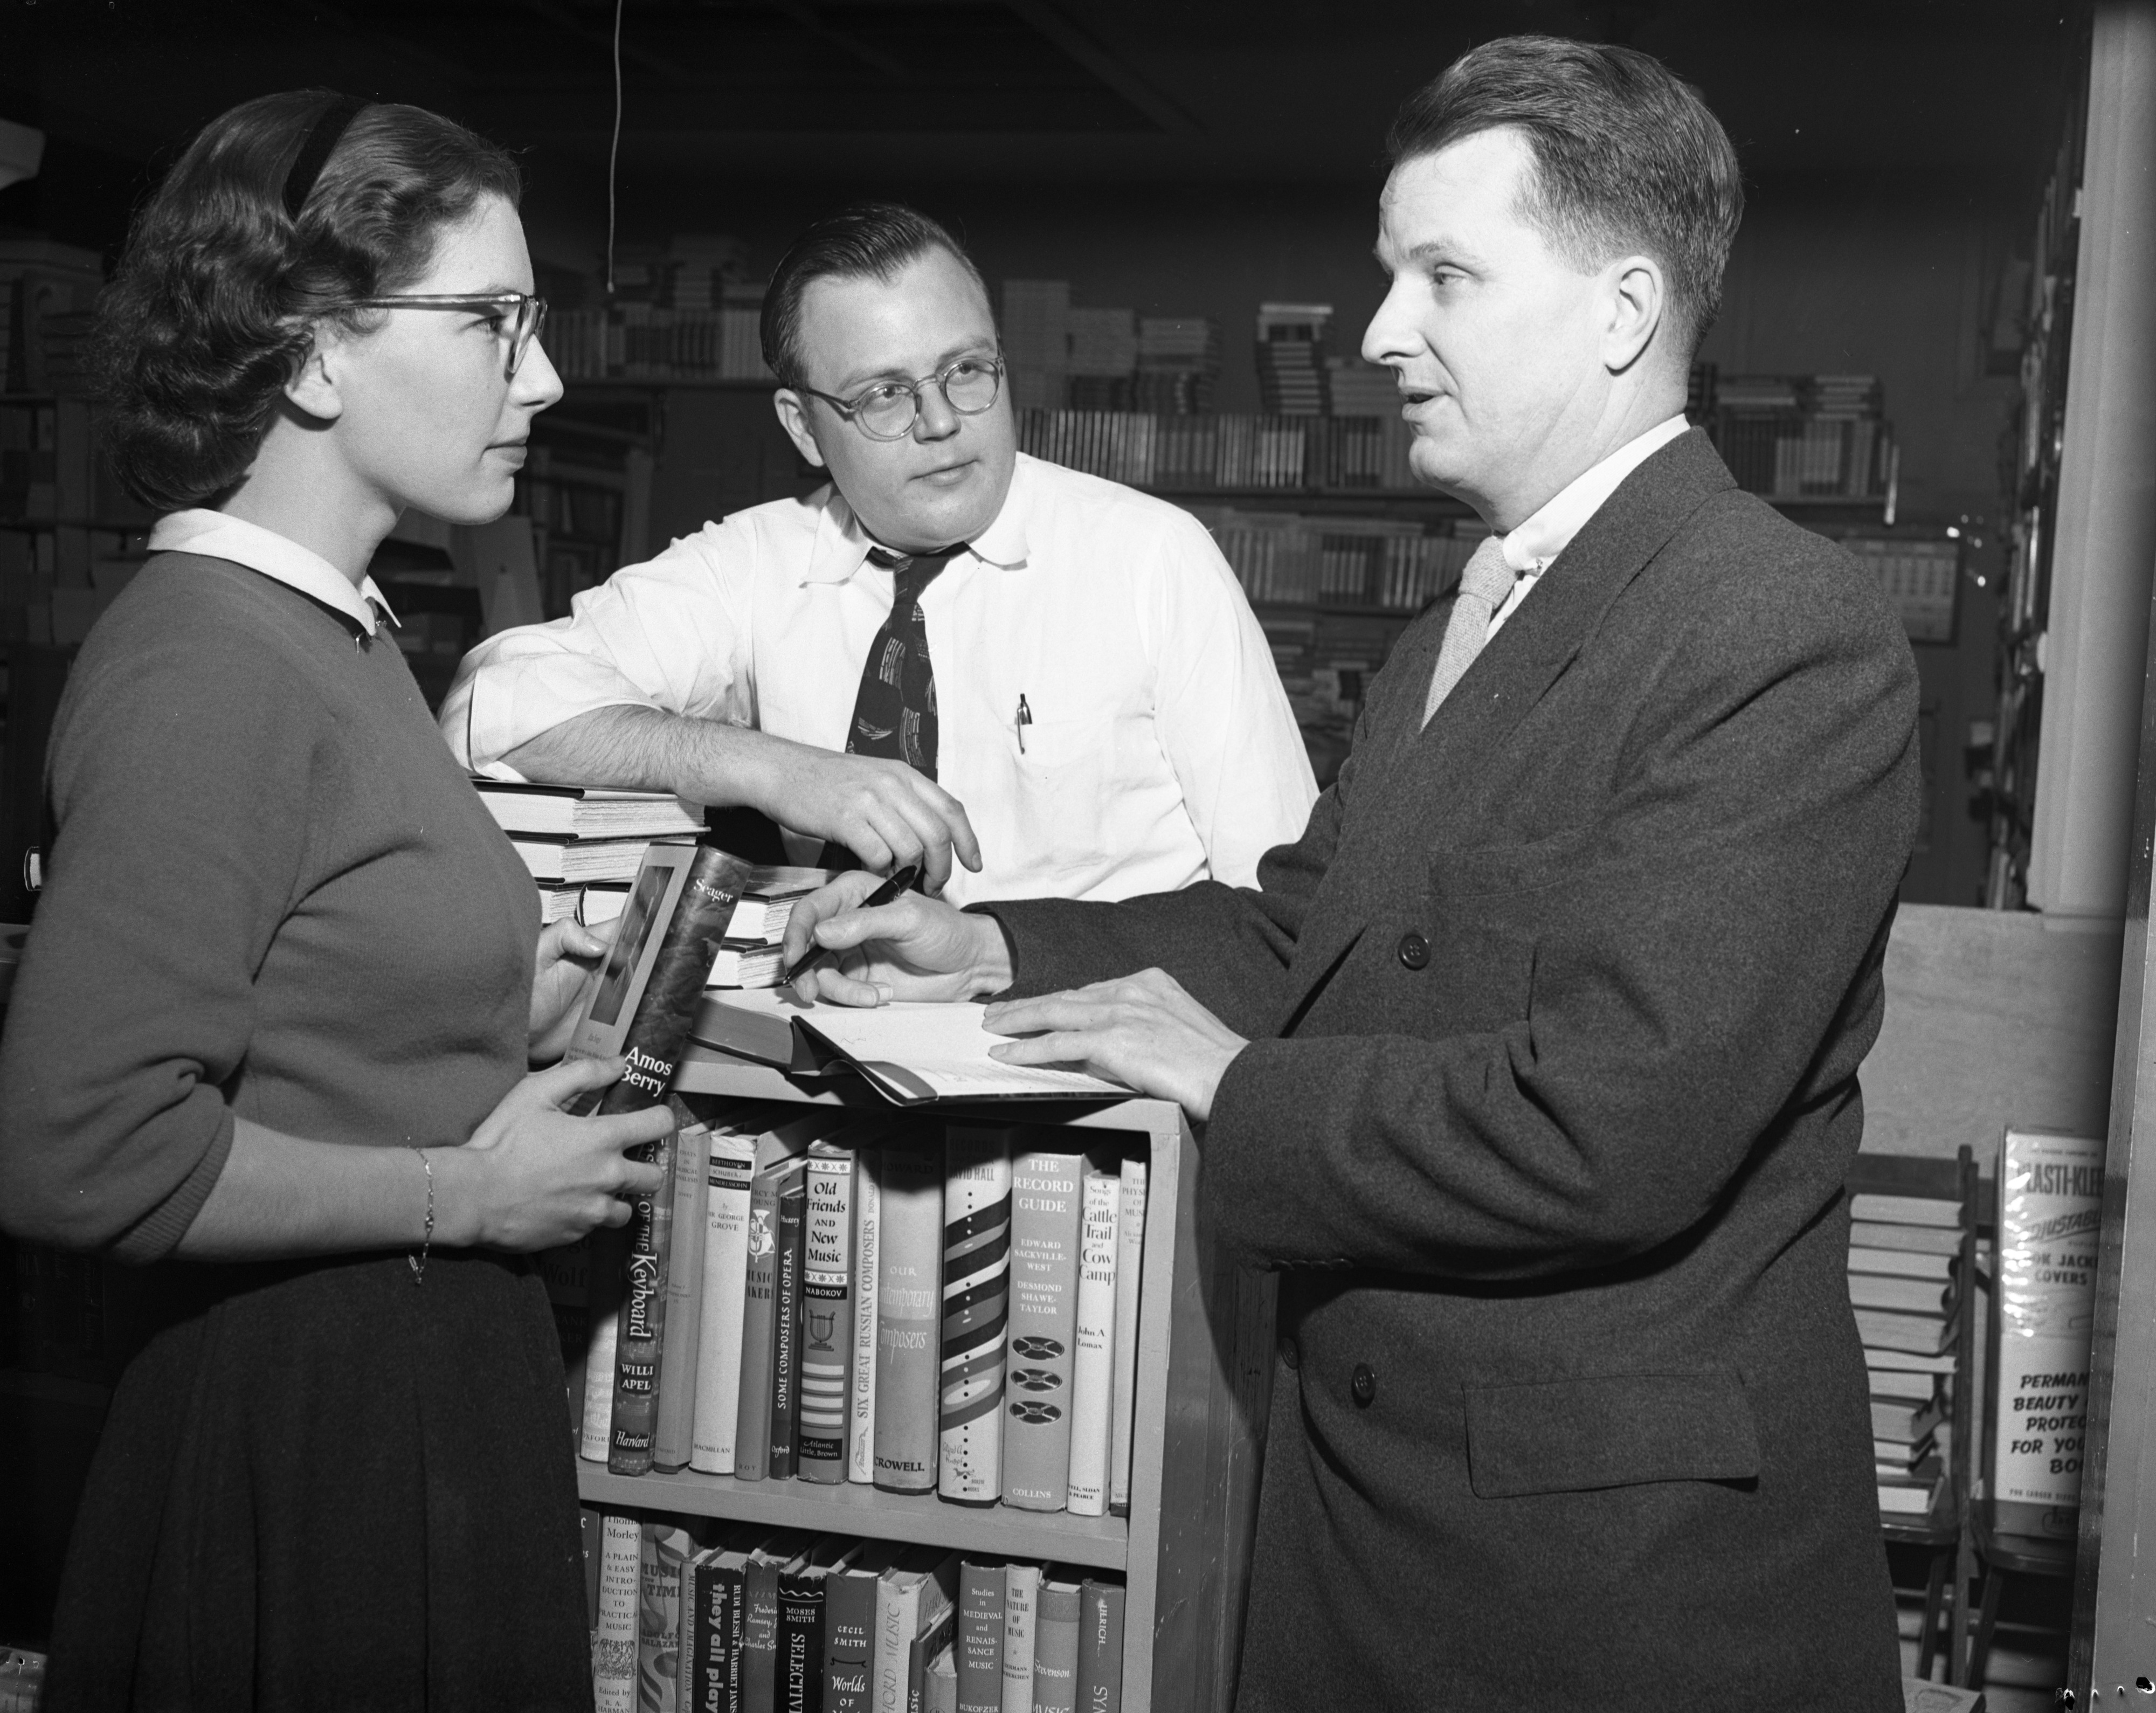 Professor Alan Seager, autographs book at Marshall's Book Store, March 1953 image